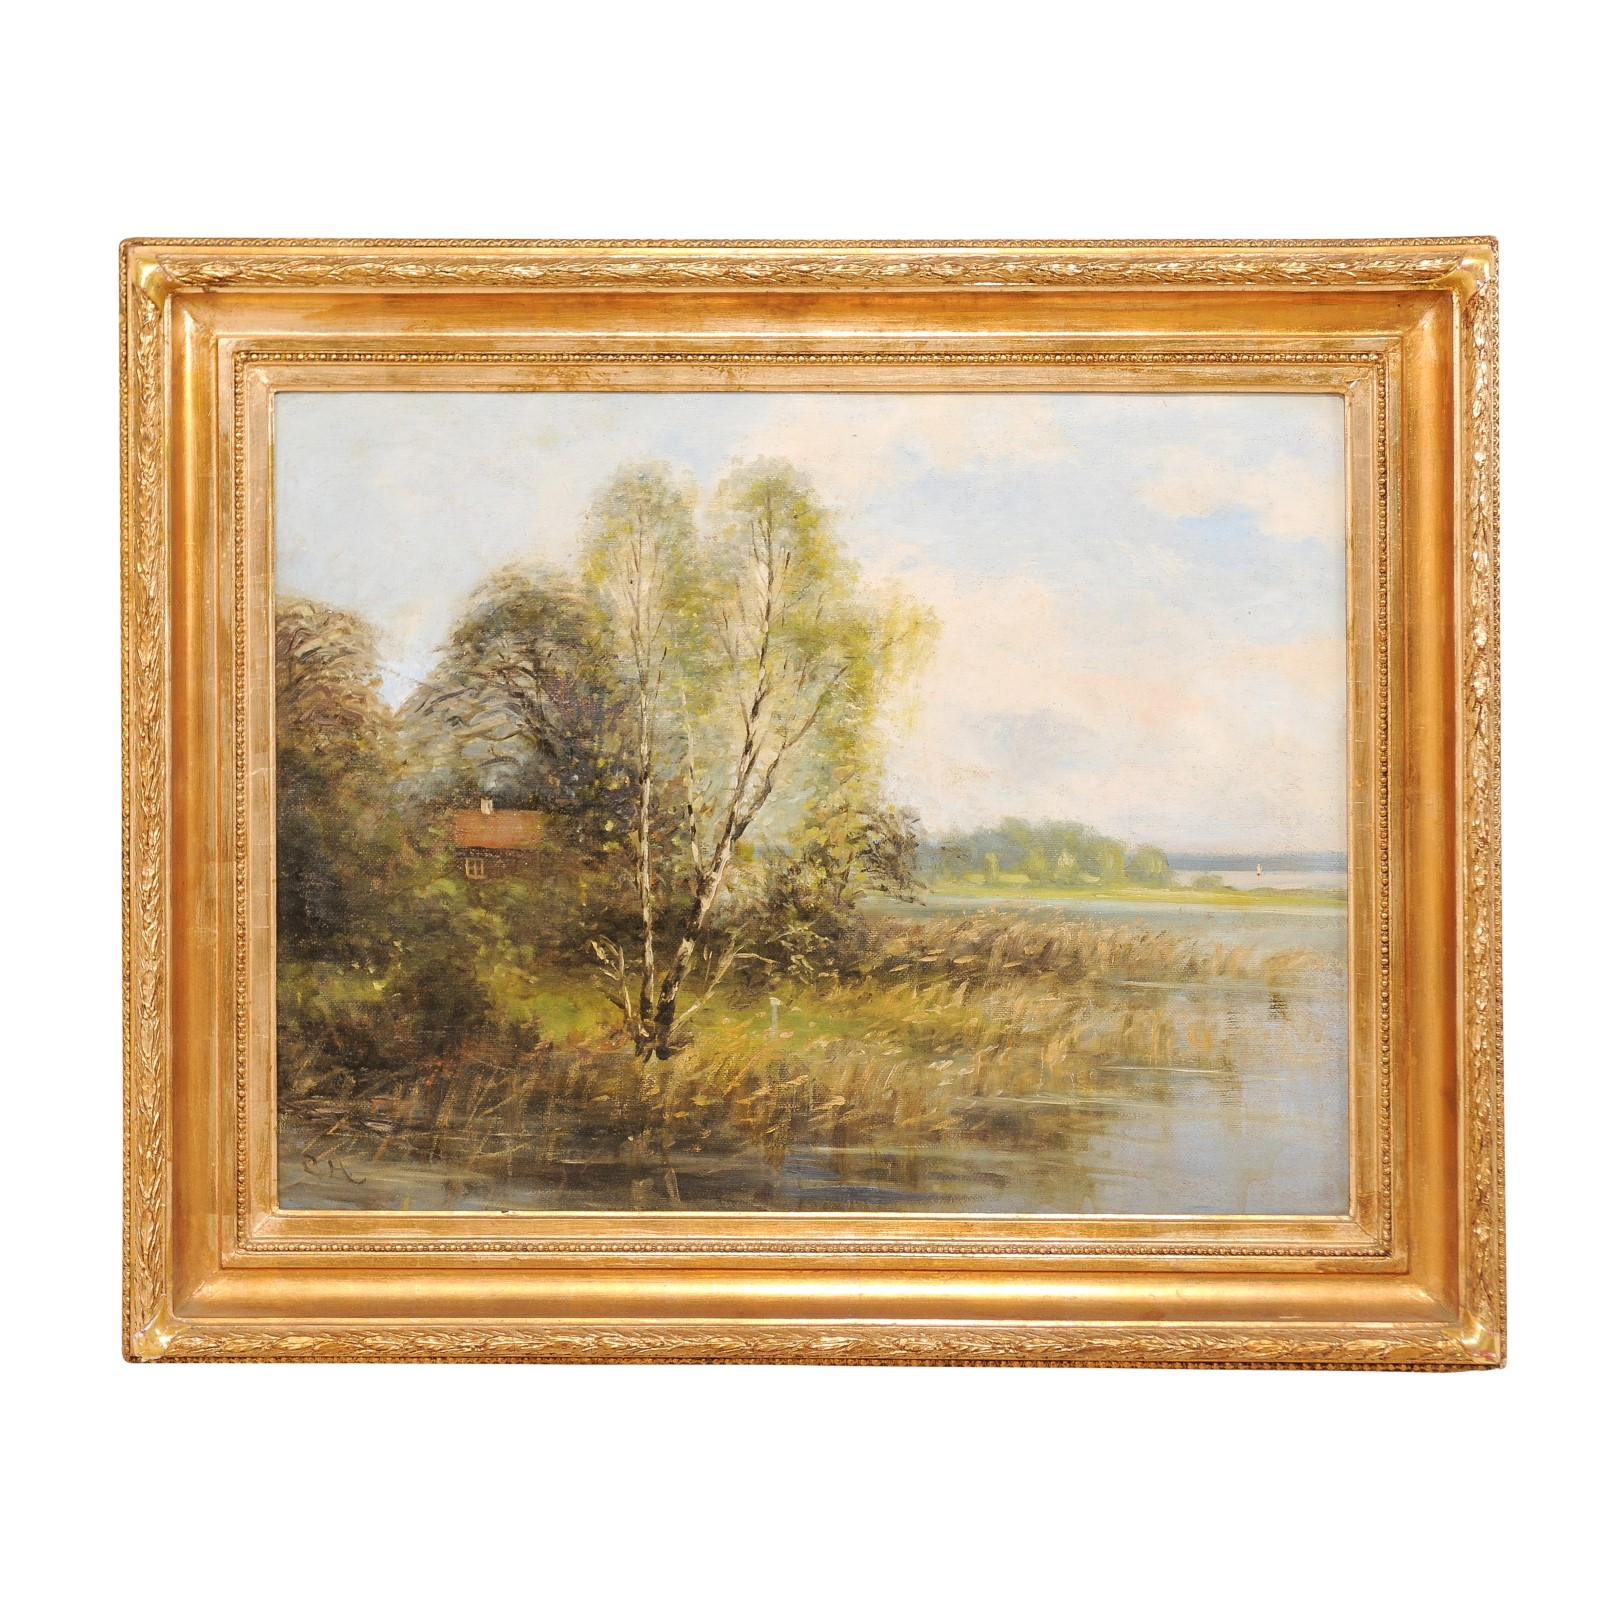 A Landscape by Water Oil Painting